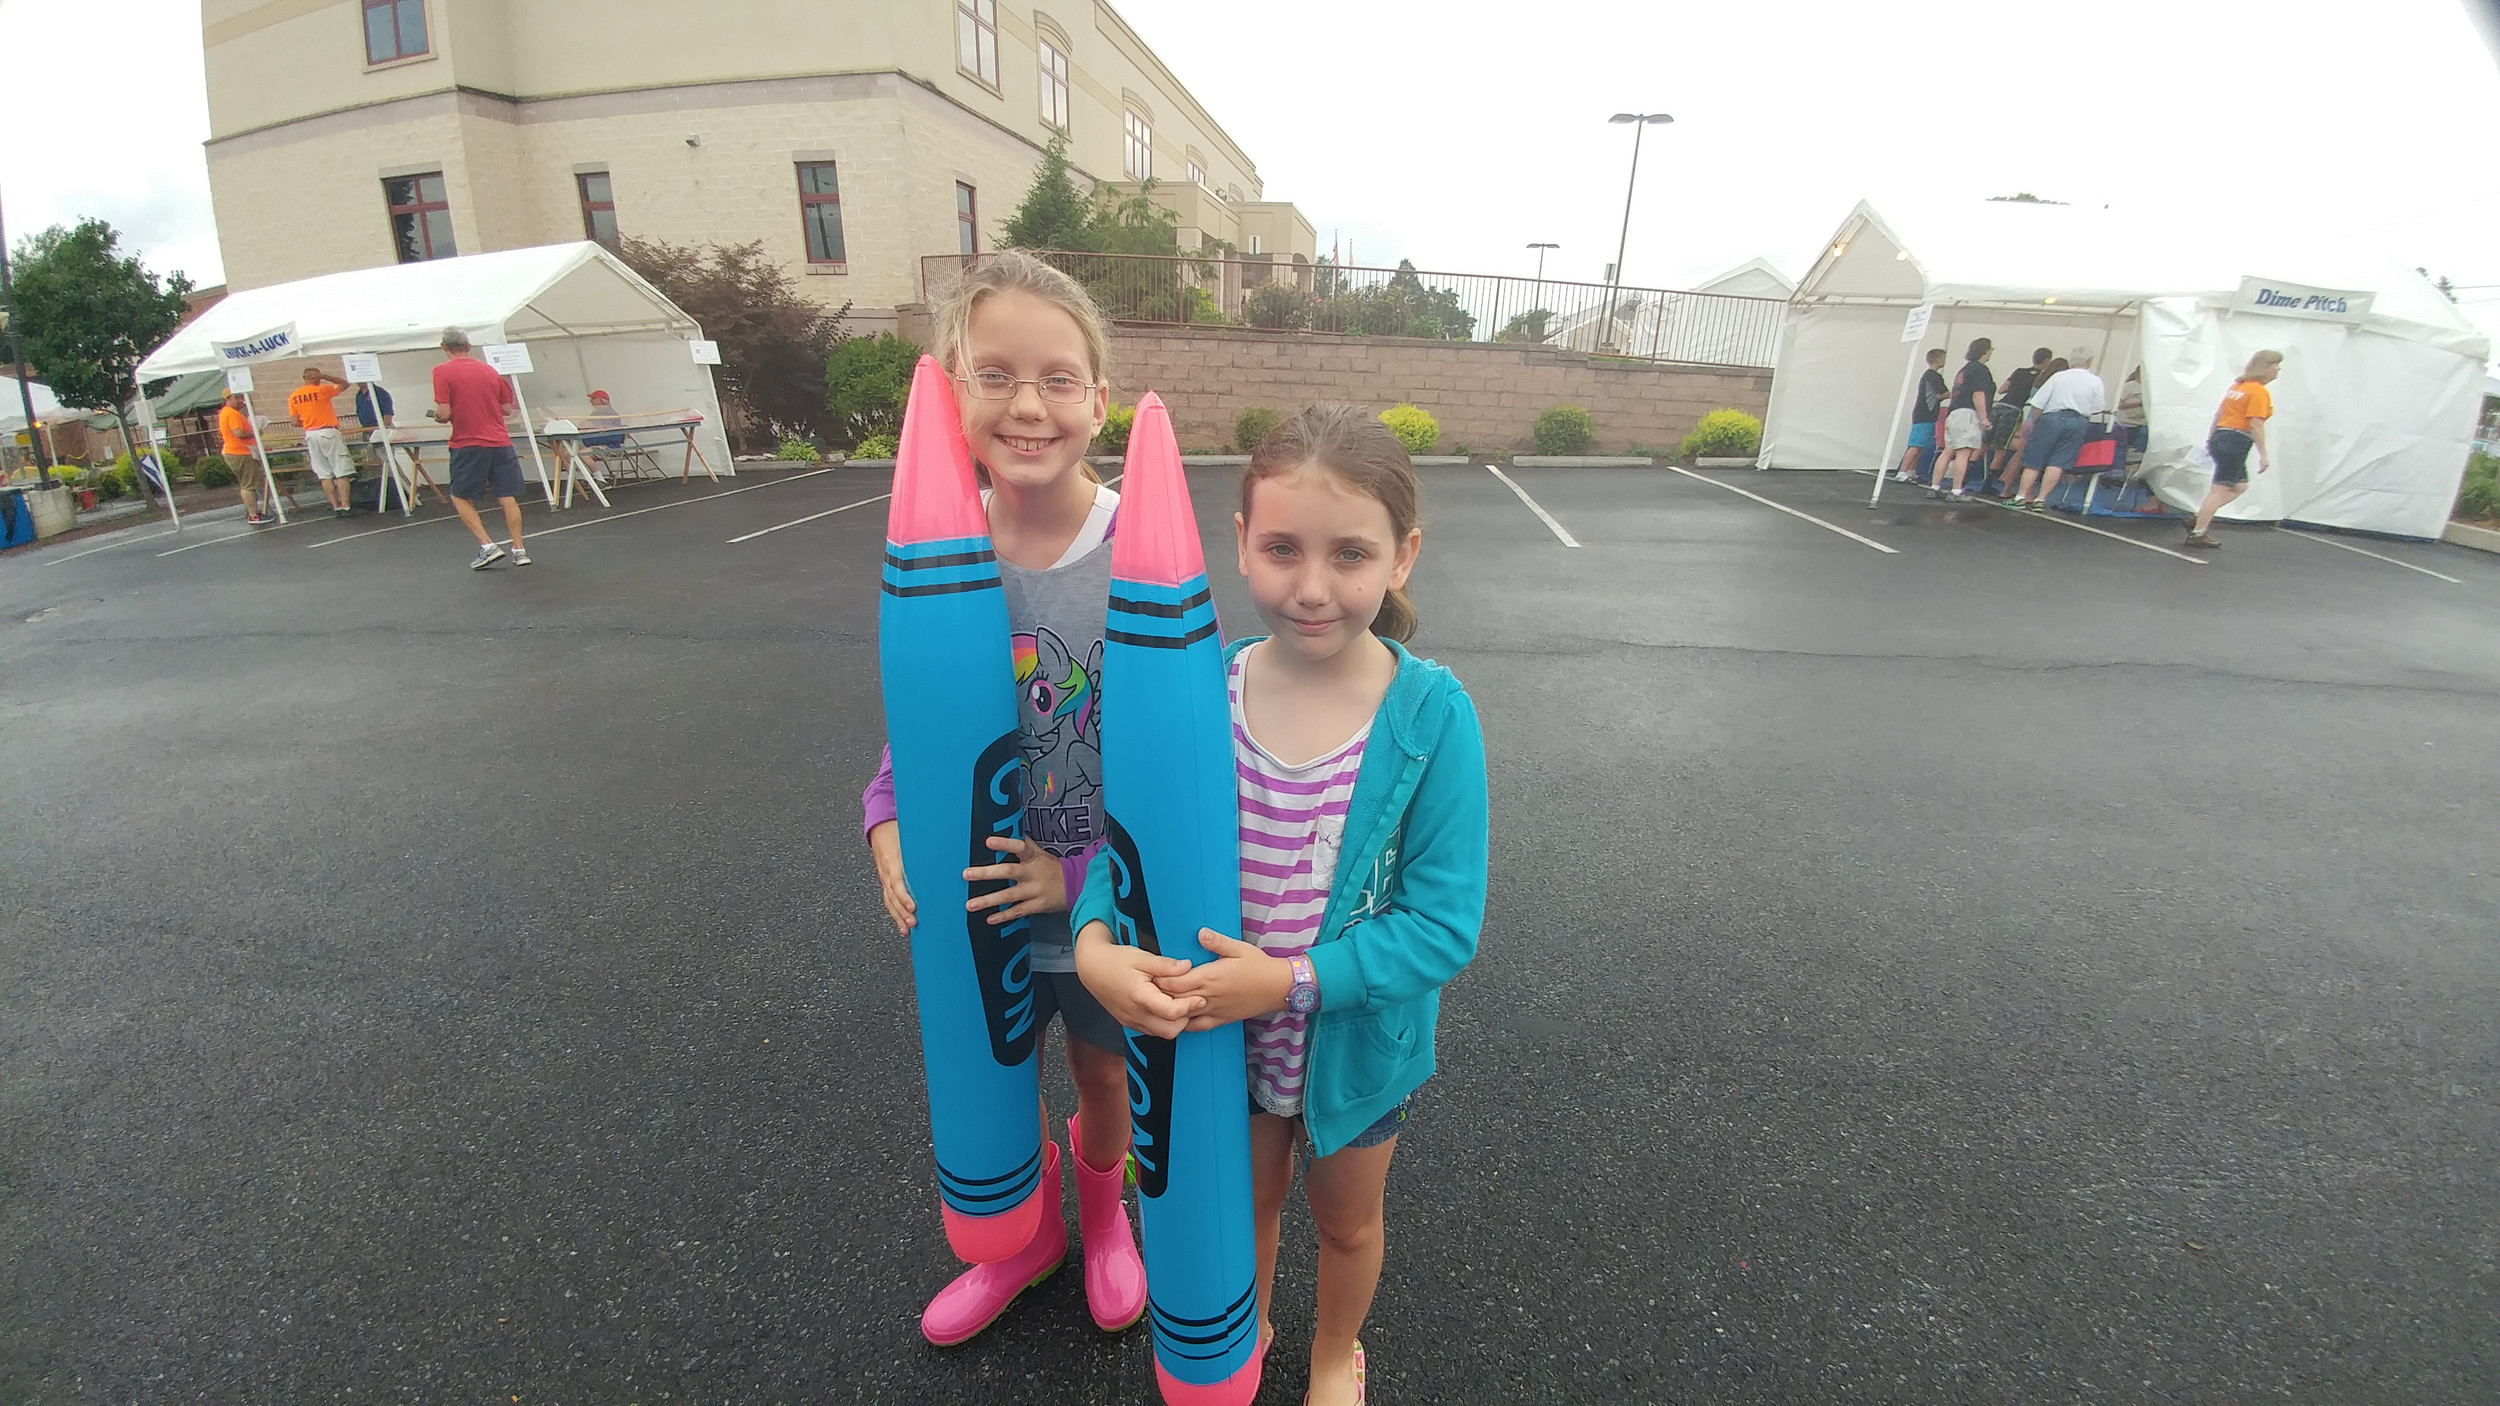 Emma Kieffer and her younger sister Phoebe show off their crayon balloons they won playing games at the Seven Sorrows Festival.